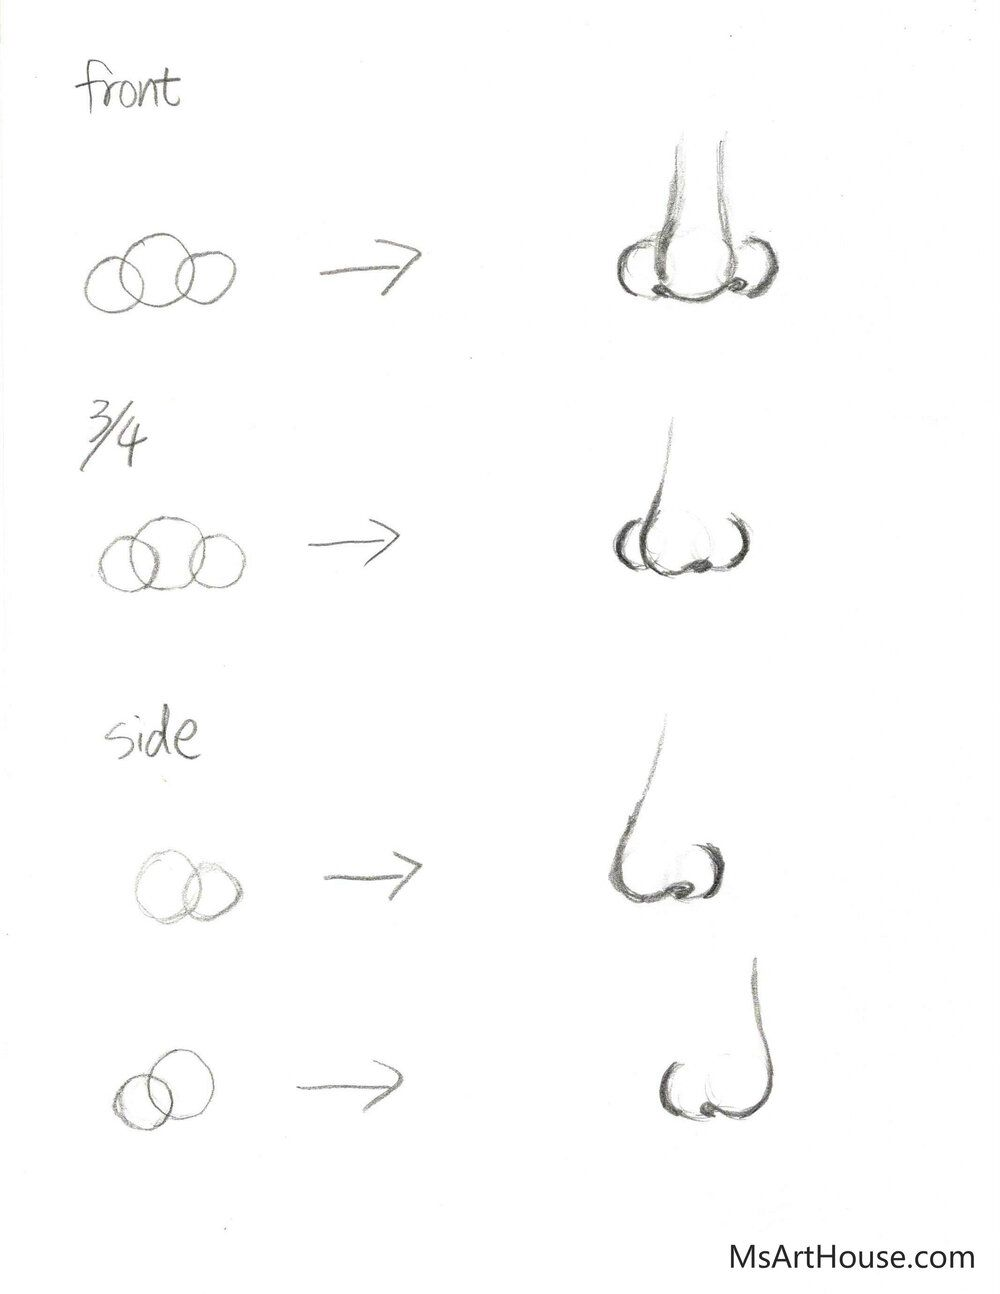 How To Draw Nose From Different Angles Easy Step By Step For Beginners Front View3 4 View Side View Manzi Liu Art In 2020 Nose Drawing Nose Drawing Easy Easy Sketches For Beginners